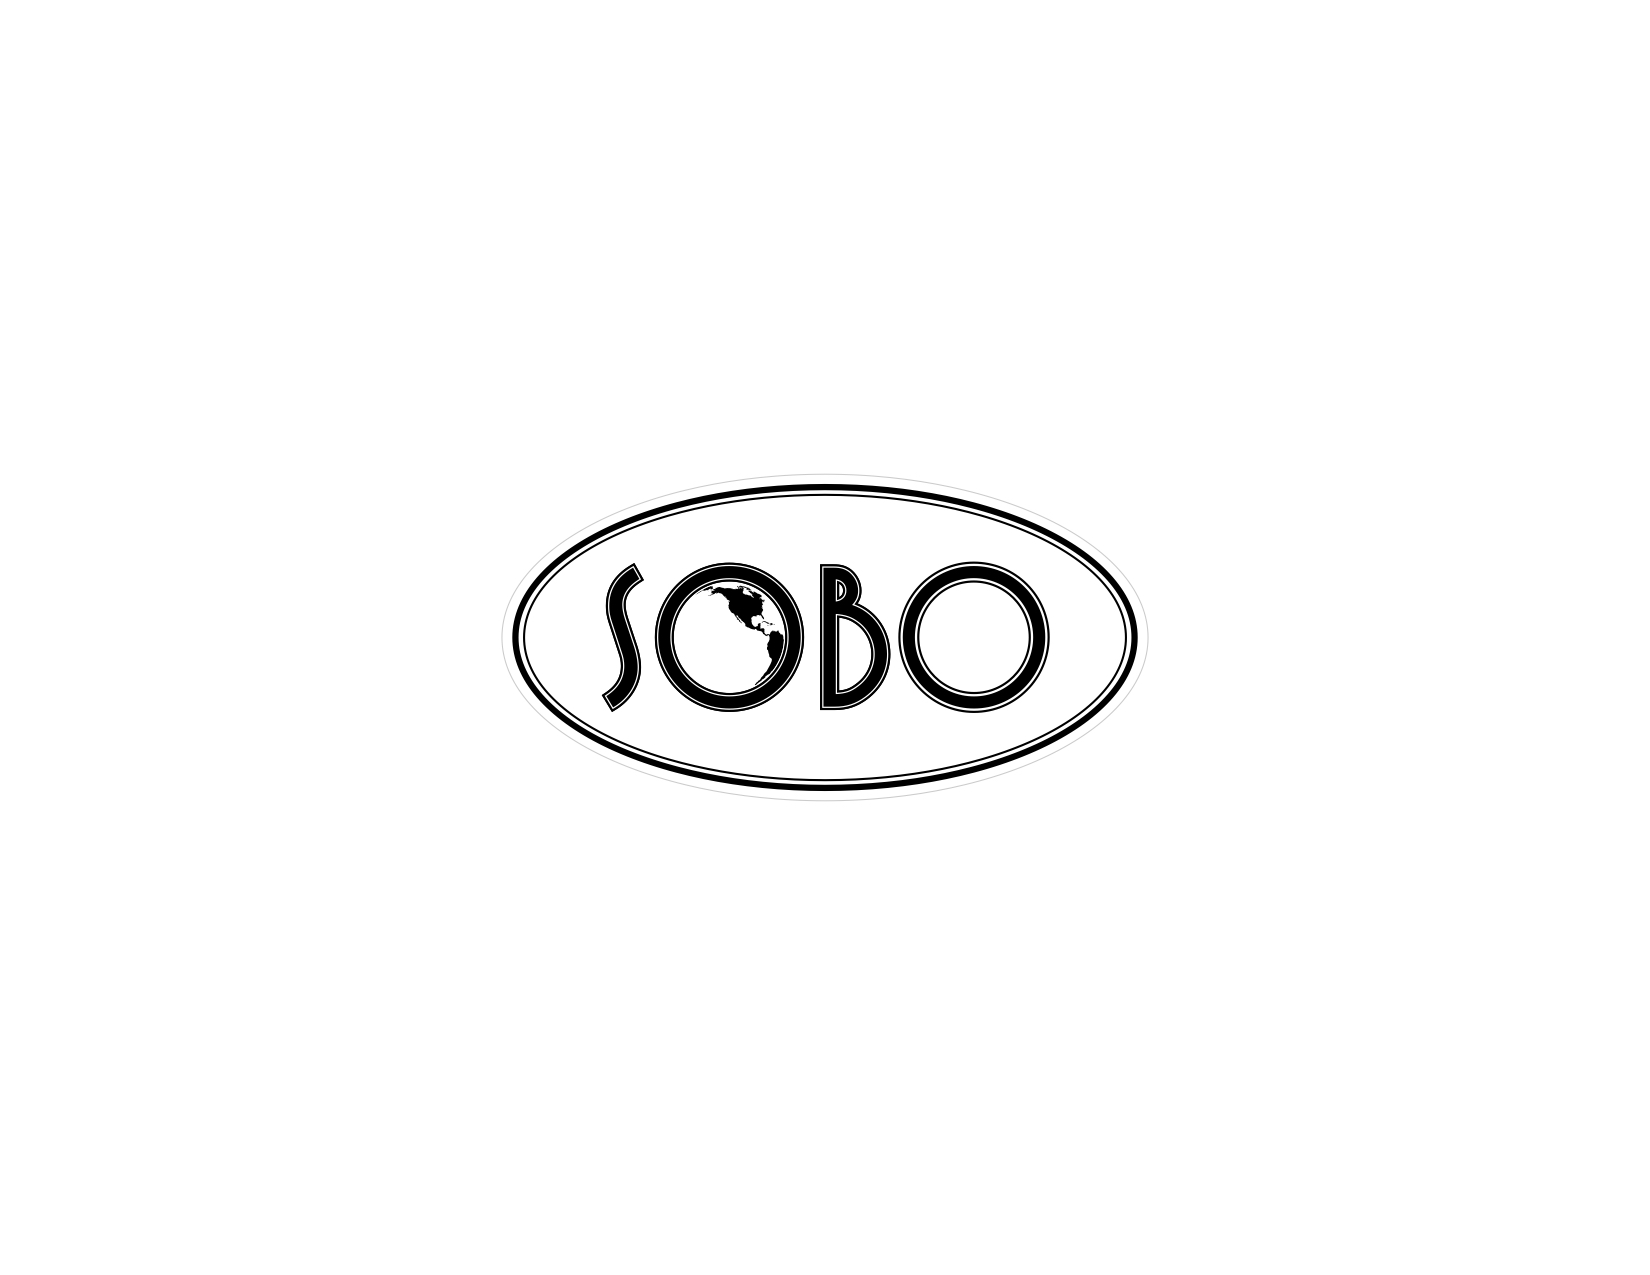 sobo_decal.jpg